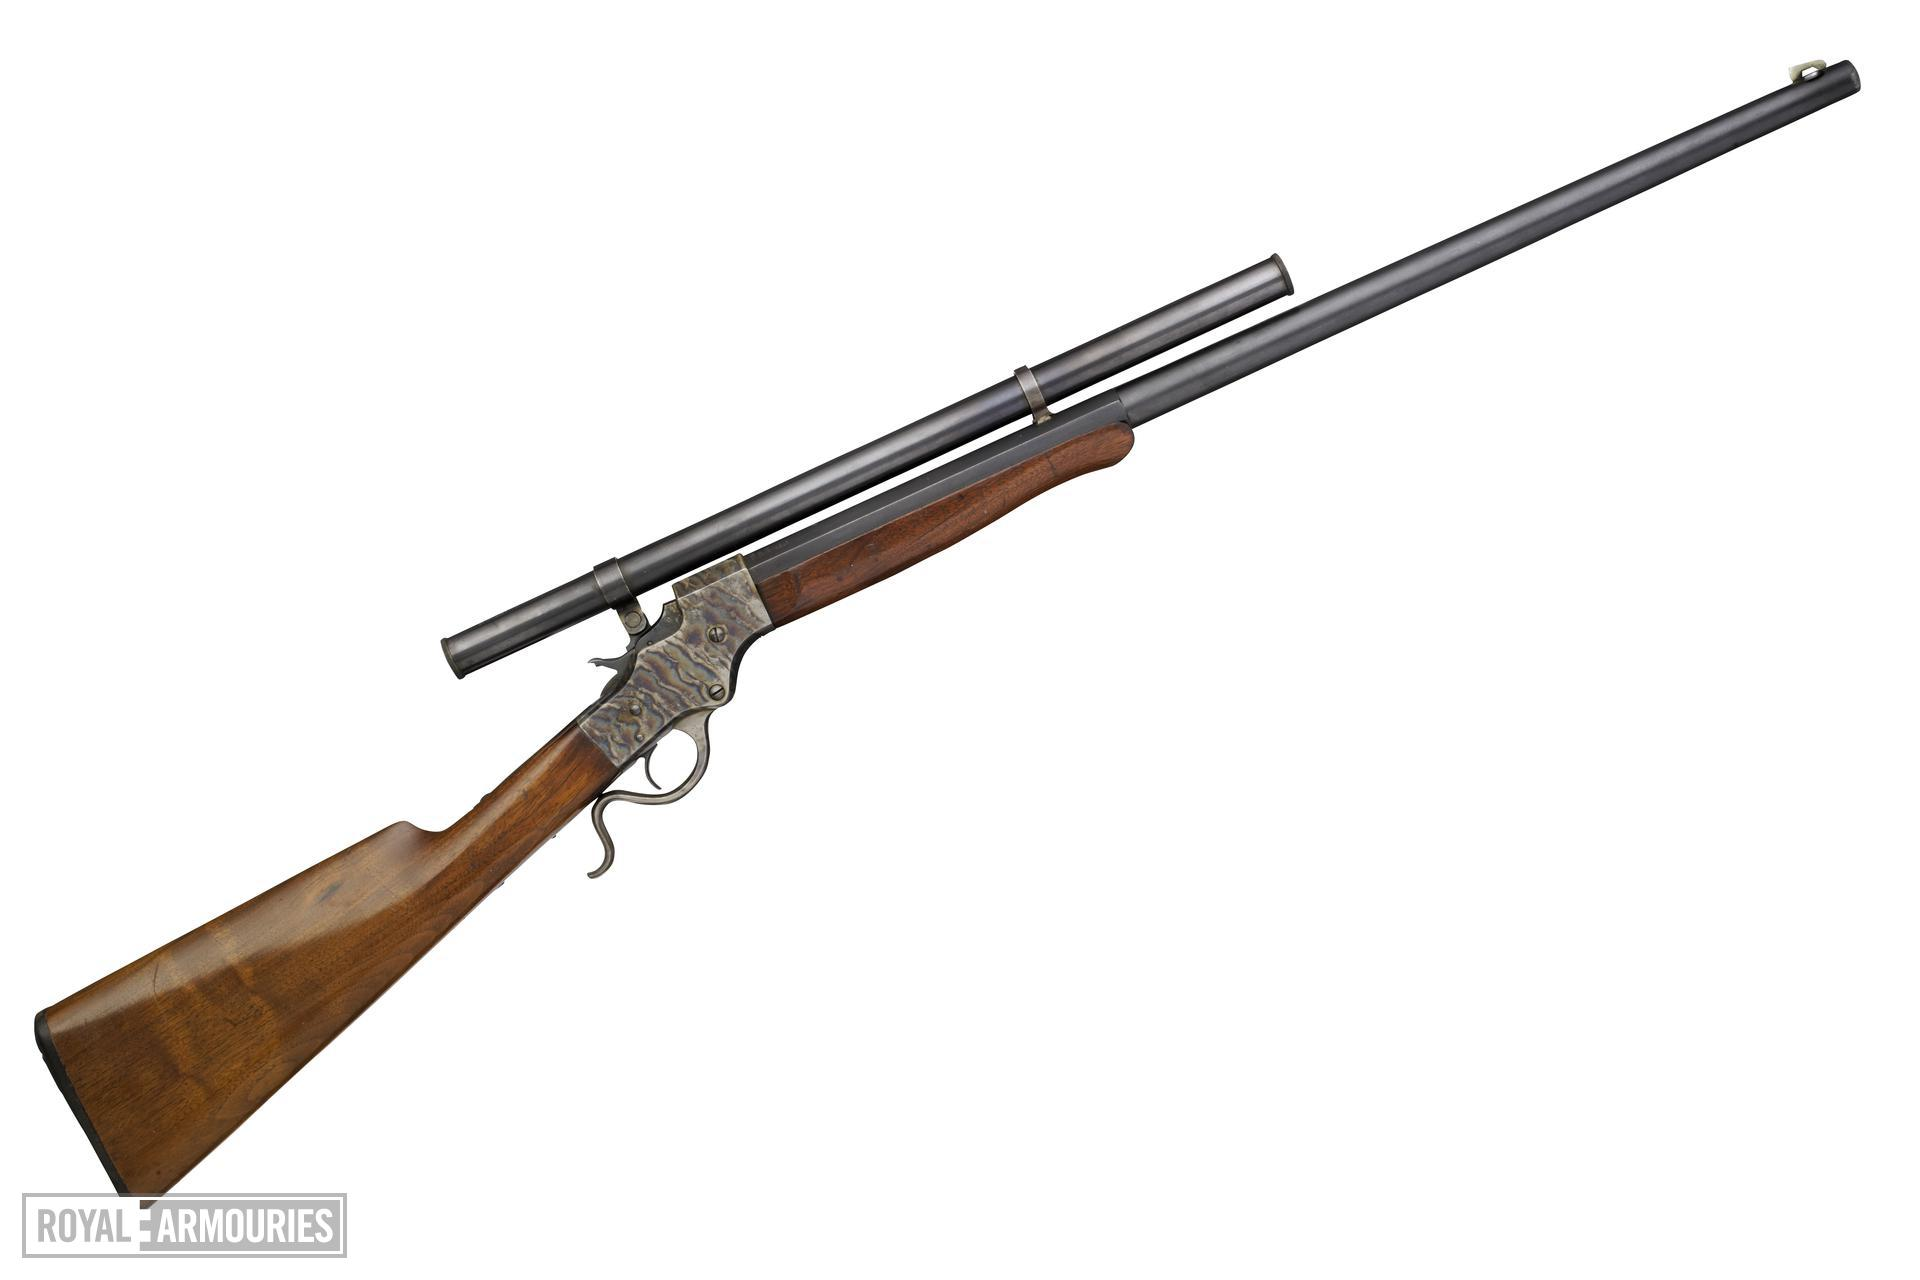 Rimfire breech-loading rifle - Stevens English Model 044 1/2 Rifle